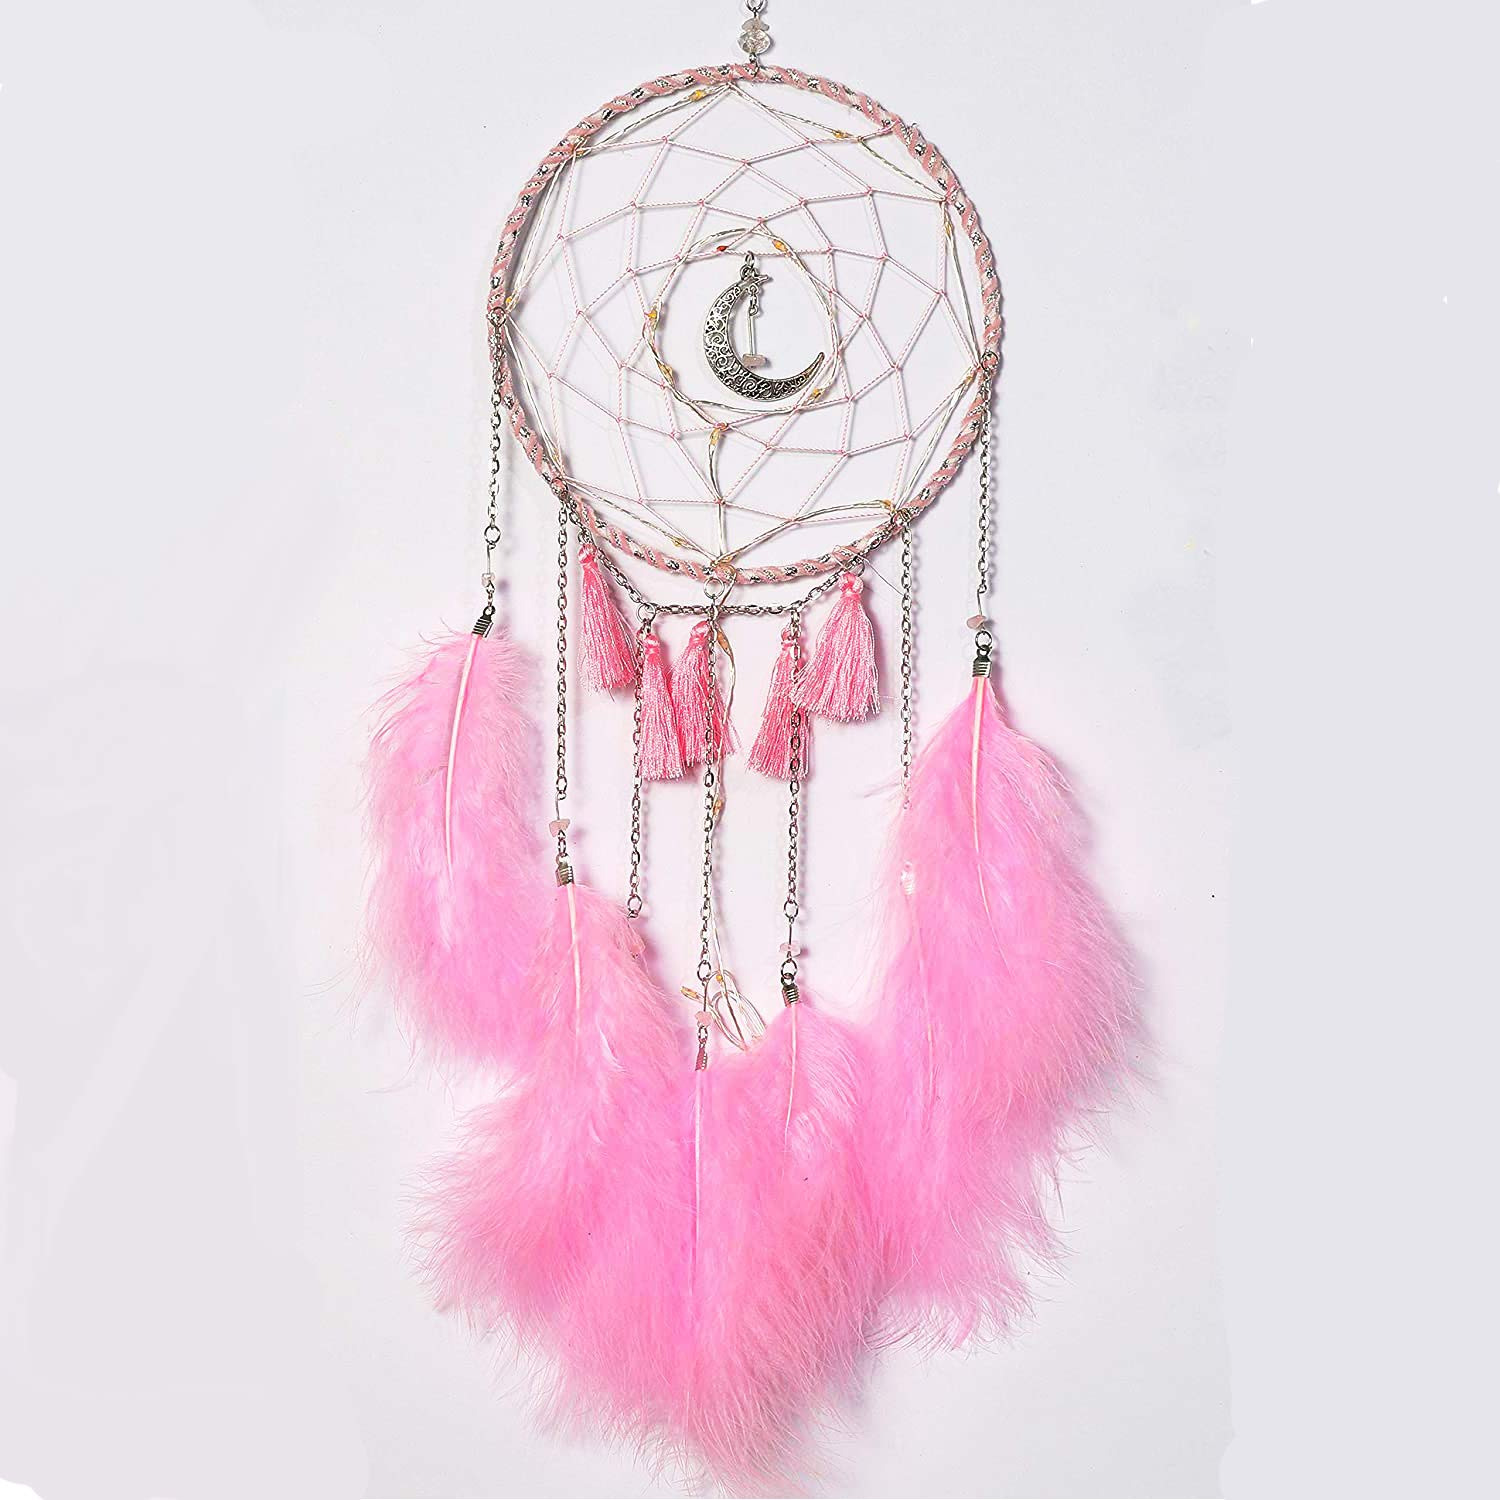 iceagle Dream Catcher Native American Boho Handmade Pink Feather Kids Dream Catchers for Bedroom Moon Craft Ornament Gifts Dream Catcher for Girls(Pink)